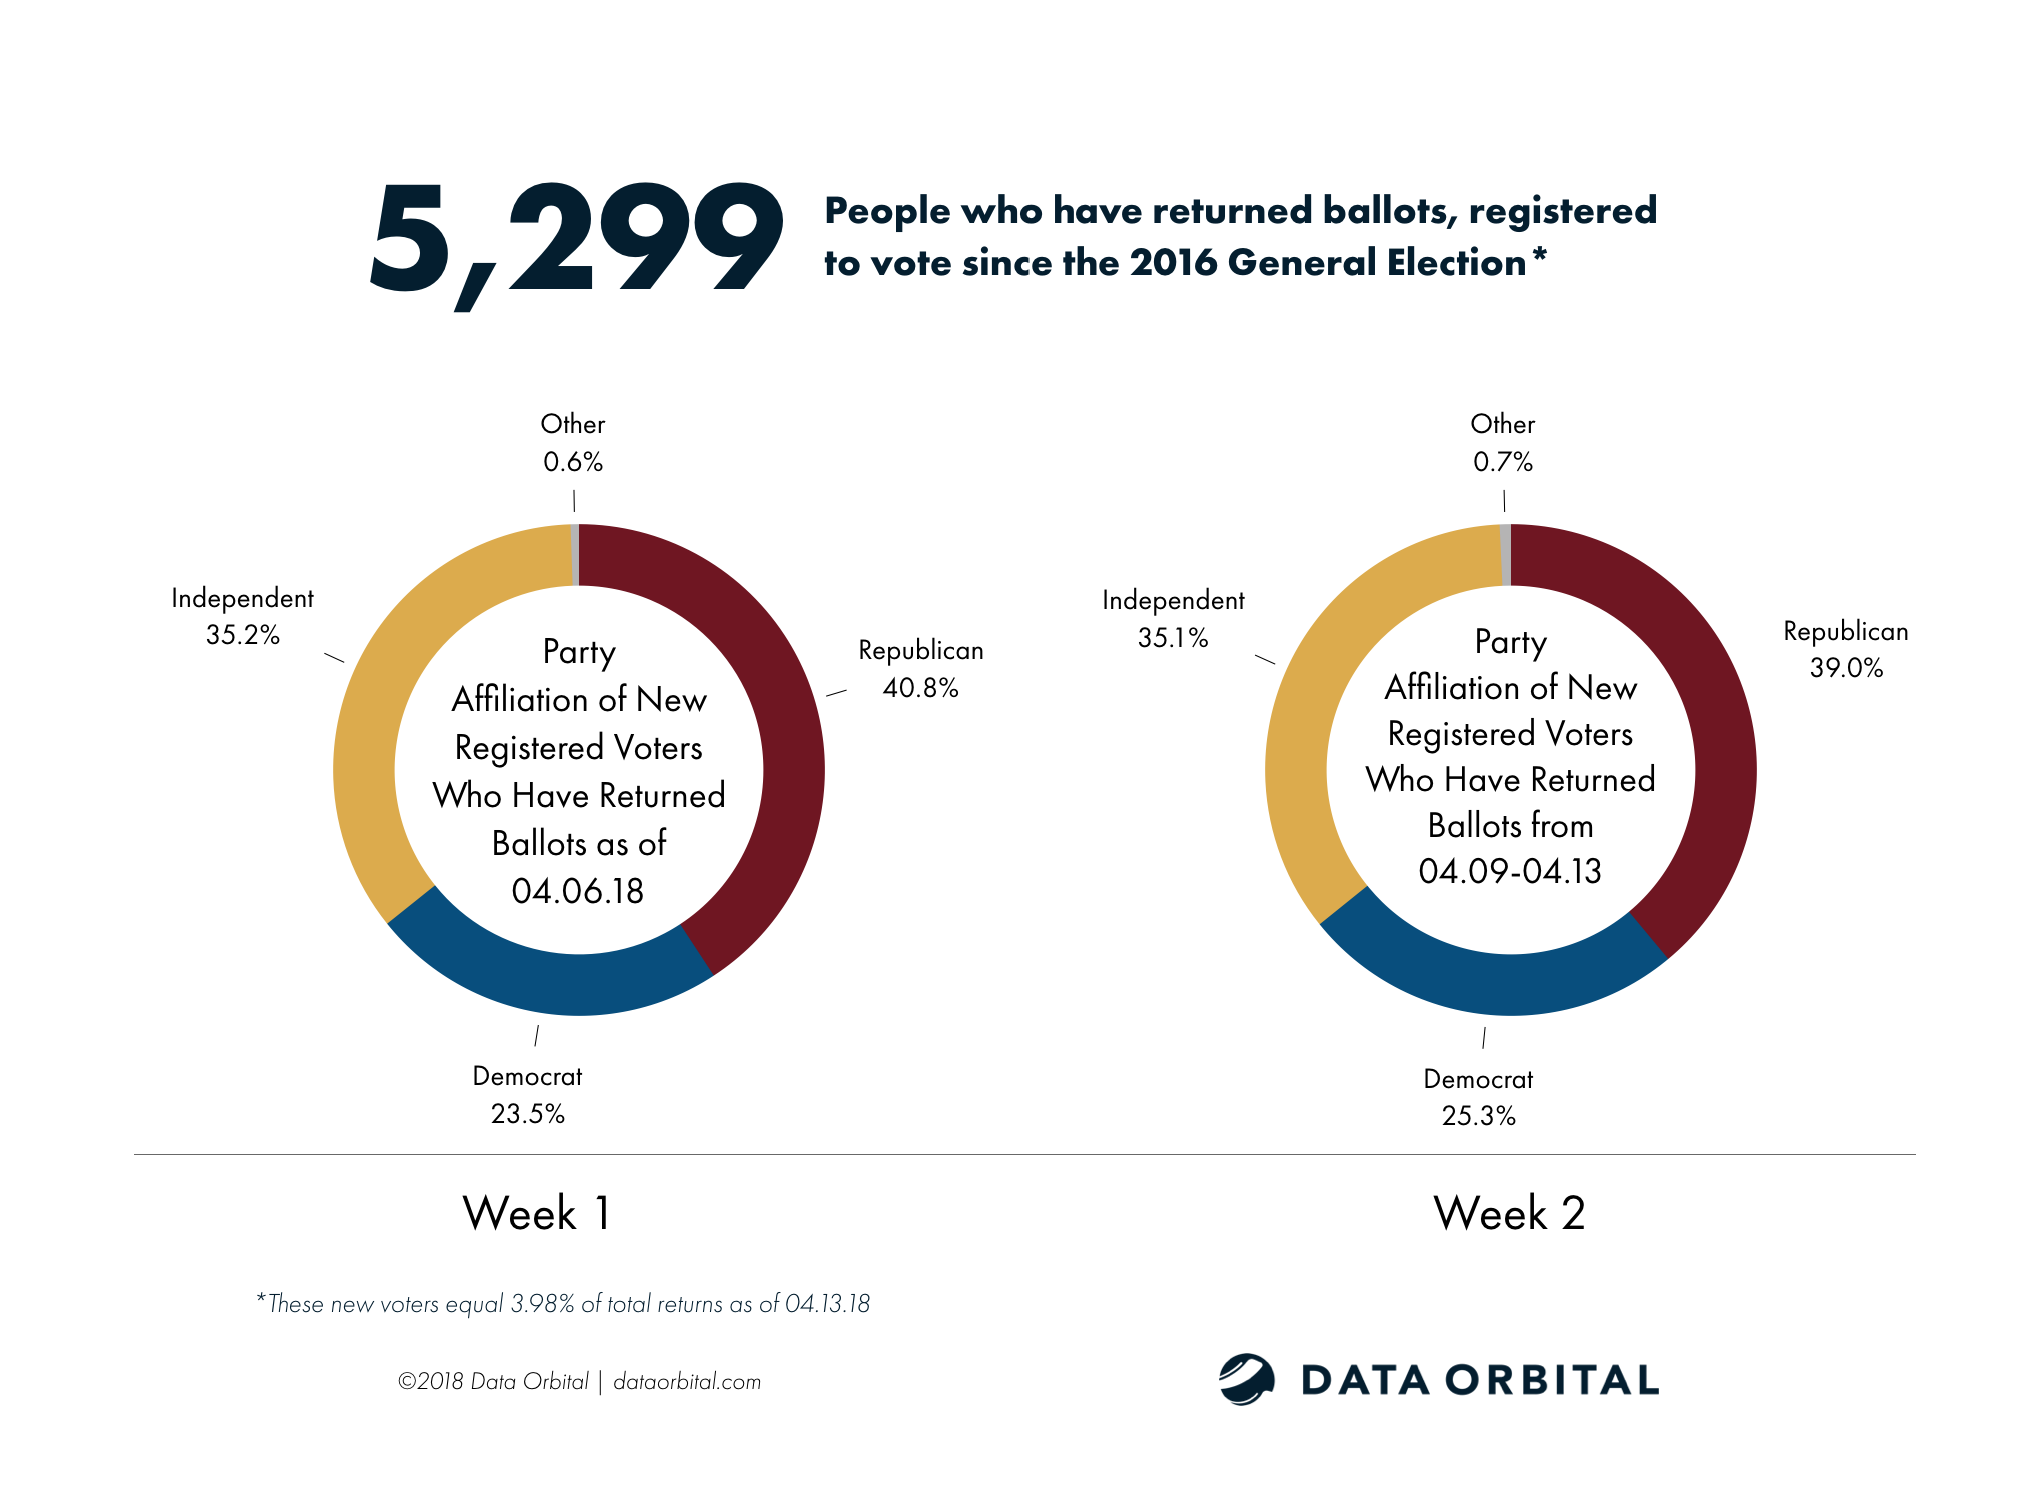 AZ08 Special Election Week 1 Wrap Up New Registered Voters Since 2016 Week 1-2 Comparison